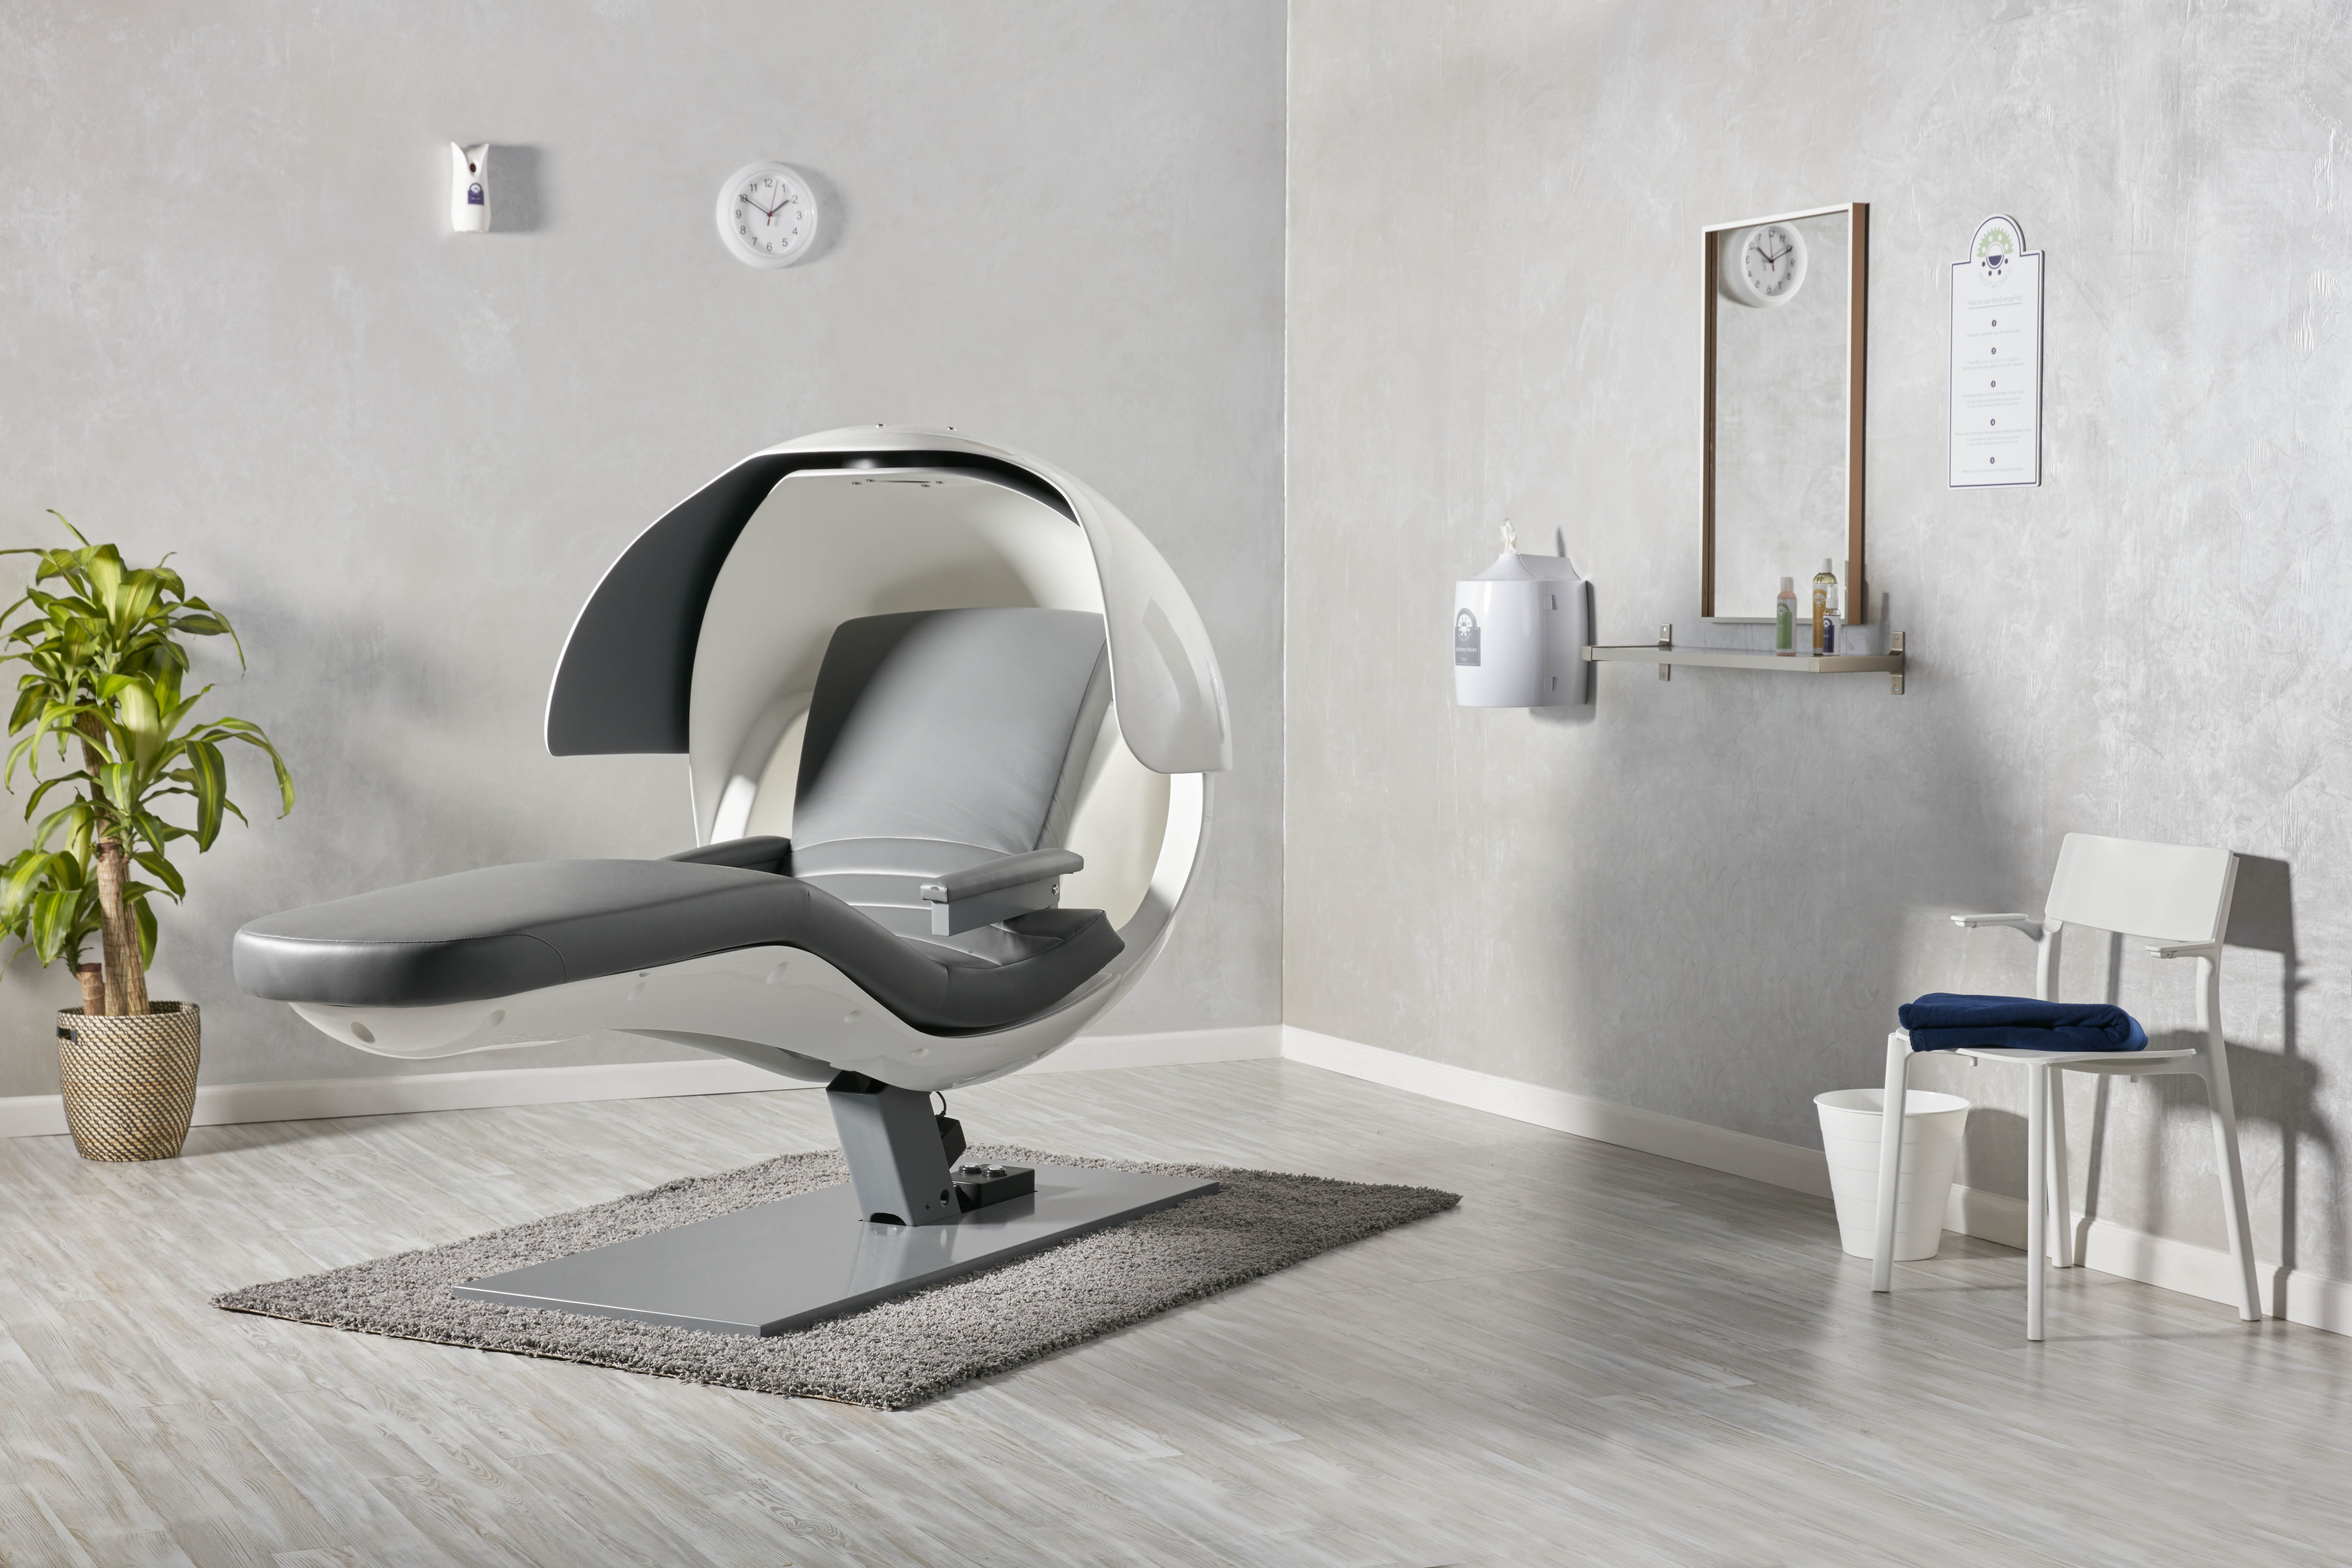 Energy Pod new options for workplace nap facilities - sleep review